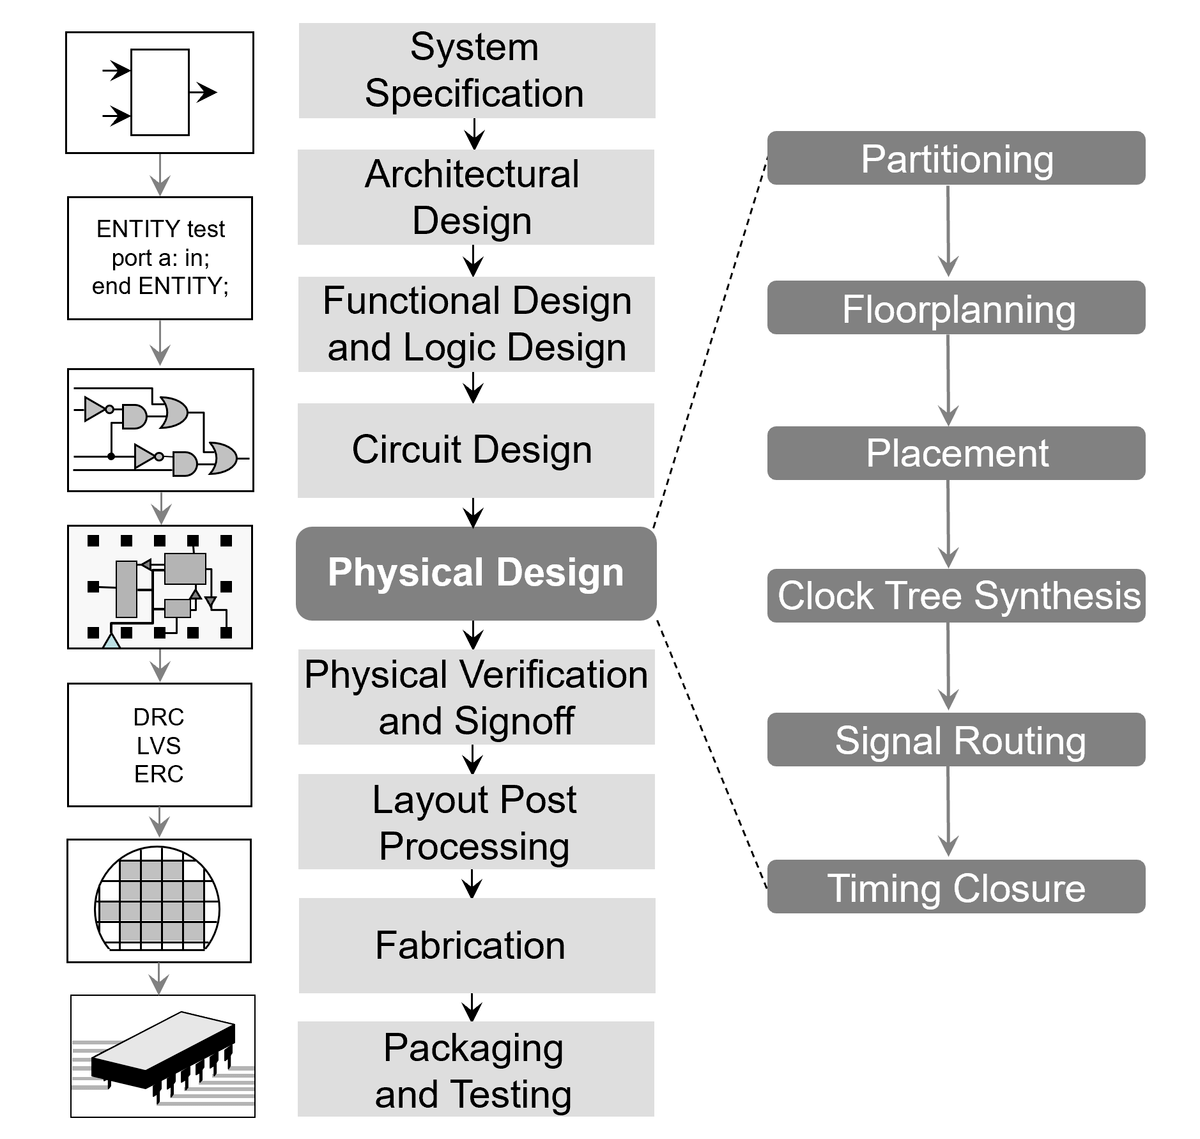 free tool to draw architecture diagram lancer ex wiring physical design (electronics) - wikipedia